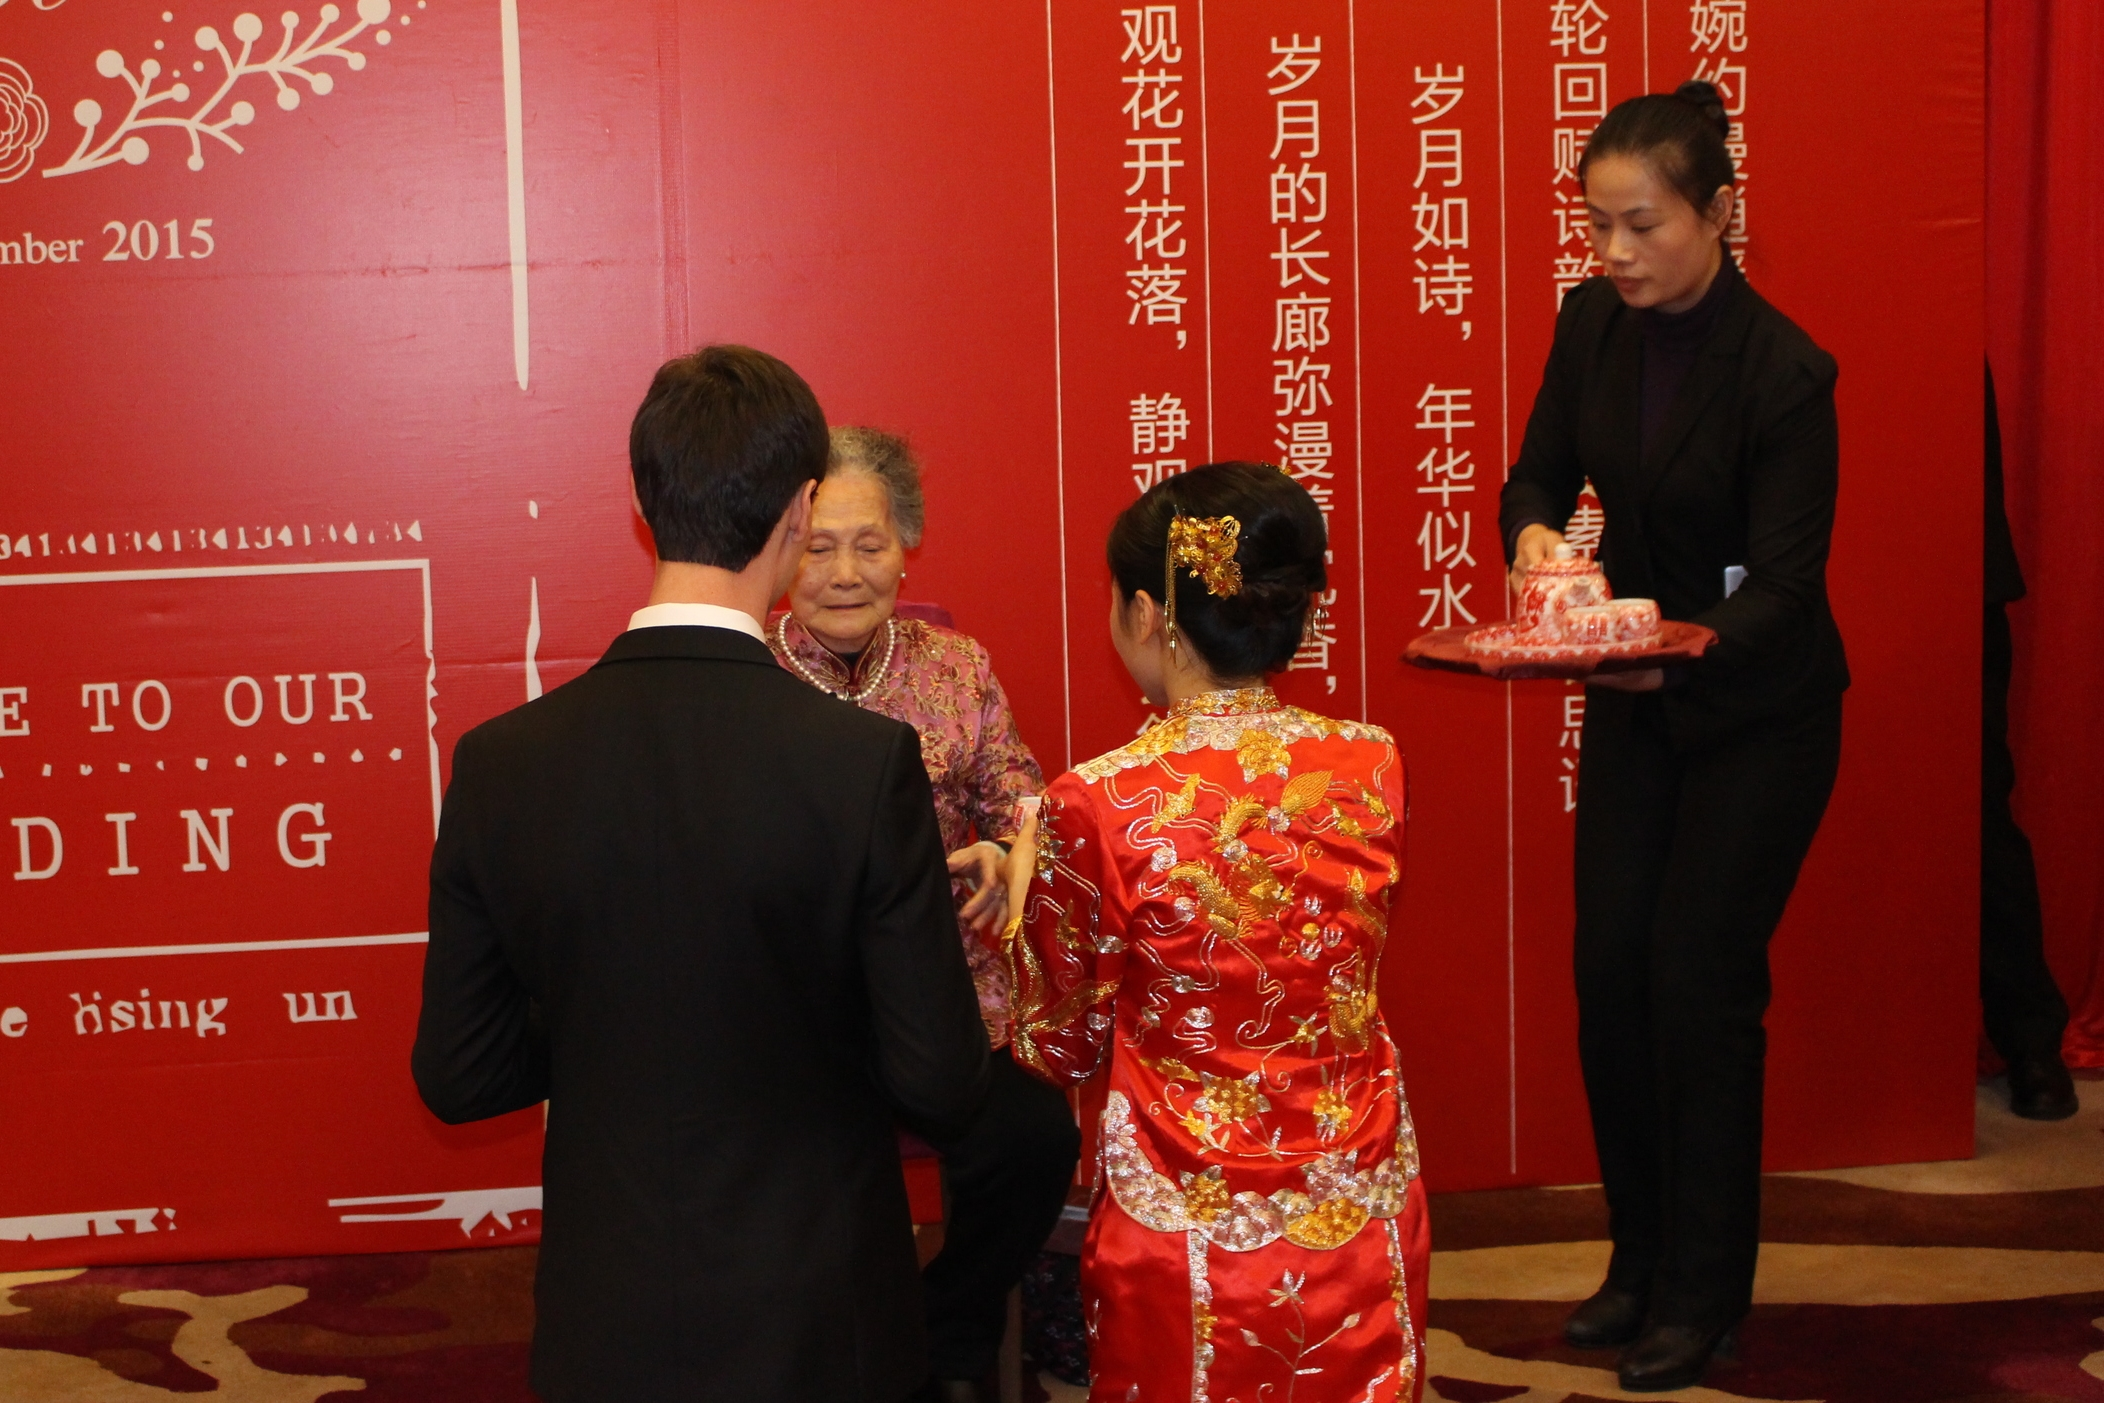 Before the reception began, Erik and Jenny had a traditional tea ceremony.